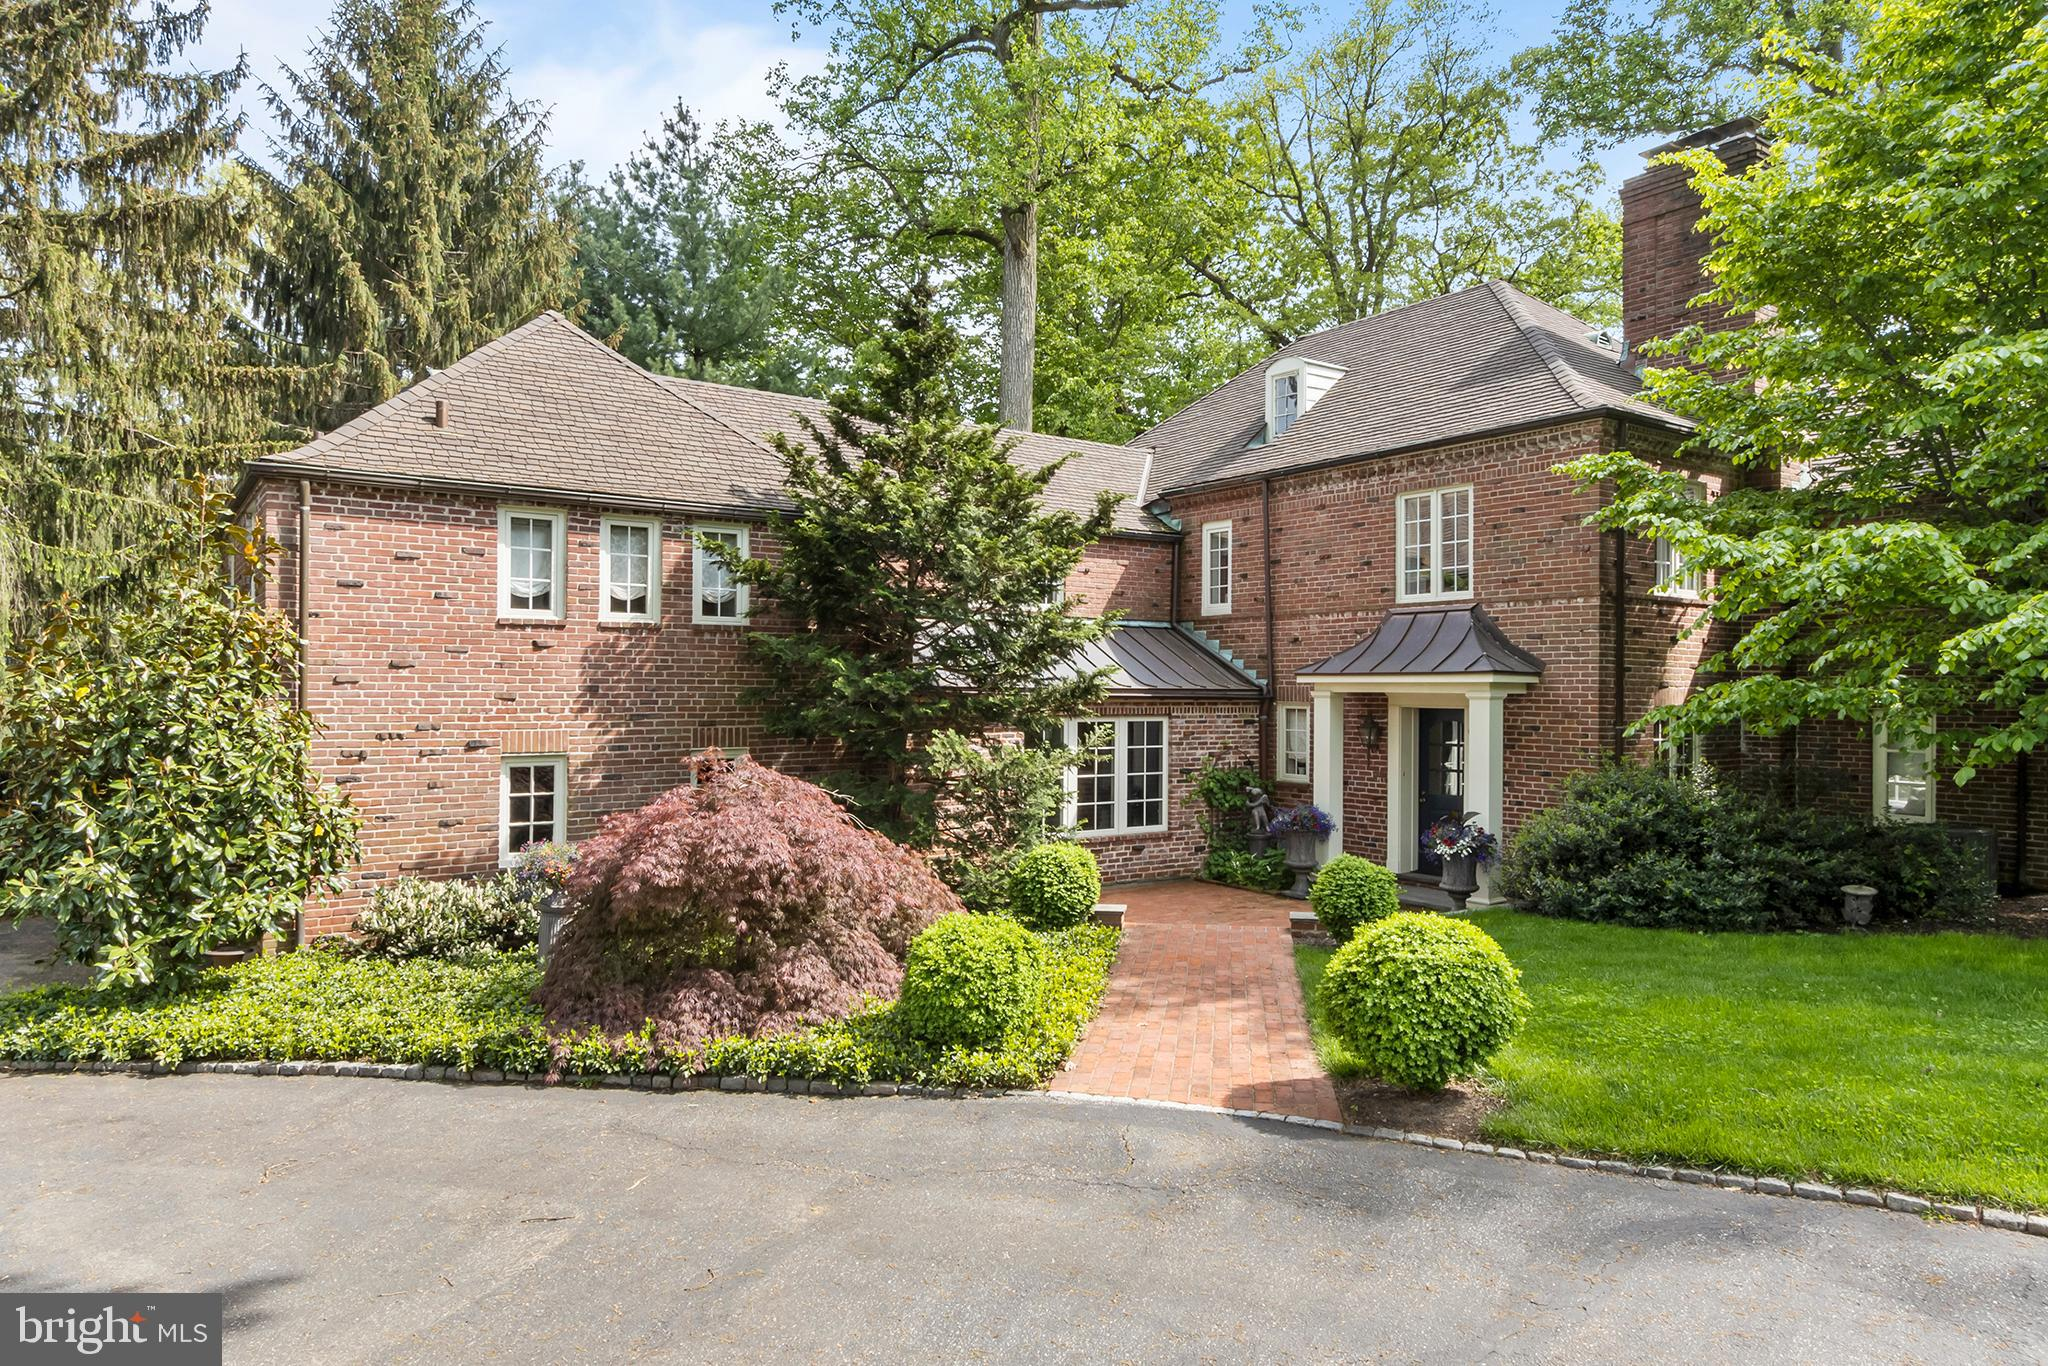 With no detail left undone, this exquisitely restored four bedroom colonial truly encompasses the best of luxury living in Montgomery County. With stunning curb appeal, beautifully landscaped grounds, and a charming brick facade, you'll instantly feel at home upon approaching 235 Cheswold Lane.   Enter into a grand foyer adorned with an antique fireplace, original wooden wall paneling, and a powder room. Rich wood floors, recessed lighting, and decorative moldings are just some of the desirable features showcased throughout the main level. Fit for a chef, the kitchen offers custom-appointments, including elegant white cabinetry, an expansive large center island with a breakfast bar, dual-tone upgraded countertops, a large farmhouse sink, and top-of-the-line stainless steel appliances. One of the most serene aspects of this residence is the light-filled breakfast area boasting several arched floor-to-ceiling french doors that open to your backyard oasis. Complete with a spacious patio, oversized flat grassy yard, shed for added storage, and a stone fire pit, your friends and family will never want to leave this tranquil outdoor space.  Off of the kitchen, you'll find a built-in wet bar and a bright formal dining room showcasing an arched doorway and several large windows. Perfect for curling up with a good book, the light-filled living room has custom-built ins, another opulent fireplace, and a picturesque window seat that overlooks the rear of the property. Concluding the main level, there is a back staircase, bonus door that leads to the back patio, and a second front door that opens into a mudroom.  Serving as your private getaway, the primary suite enjoys a lavish dressing room with a custom-built vanity and shelving, and an ensuite marble-appointed bath with a dual sink, soaking tub, and glass enclosed stall shower. The remaining three bedrooms have ample natural light and excellent closet space. Two of the guest bedrooms share a jack-n-jill designer-appointed b